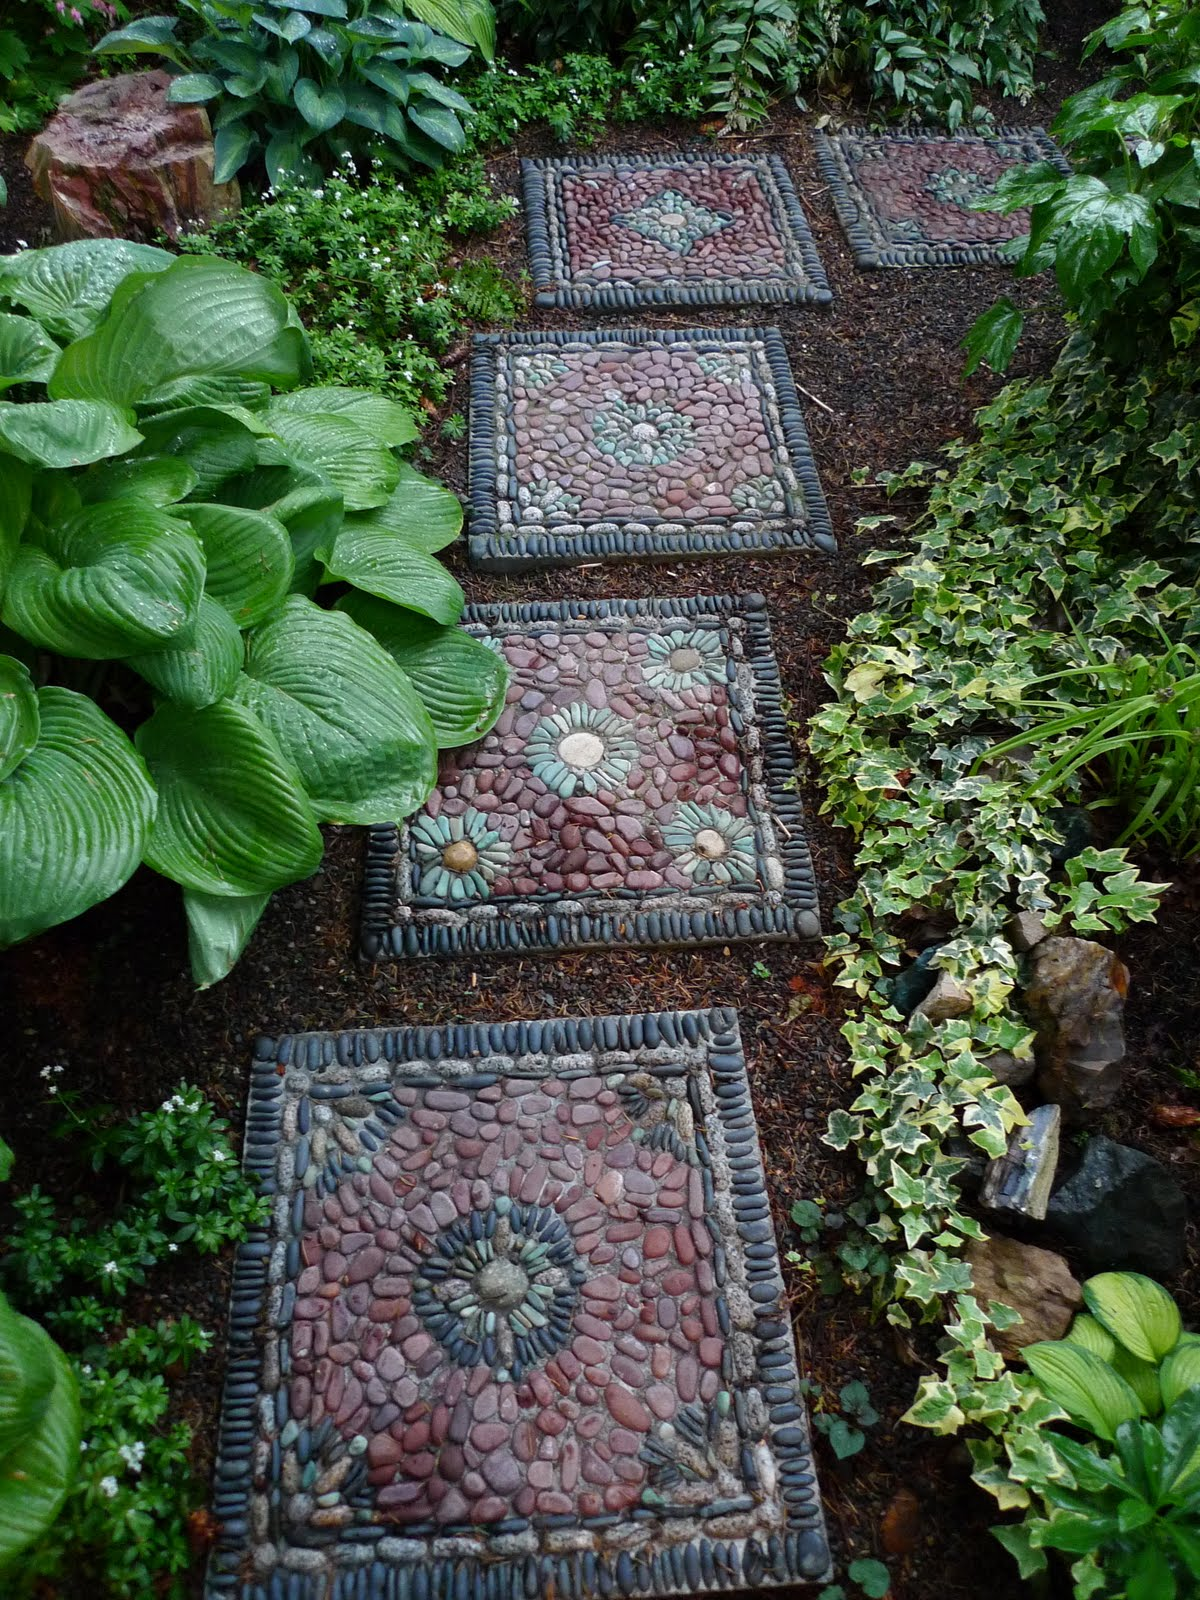 30 Beautiful DIY Stepping Stone Ideas to Decorate Garden ... on Stepping Stone Patio Ideas  id=14039